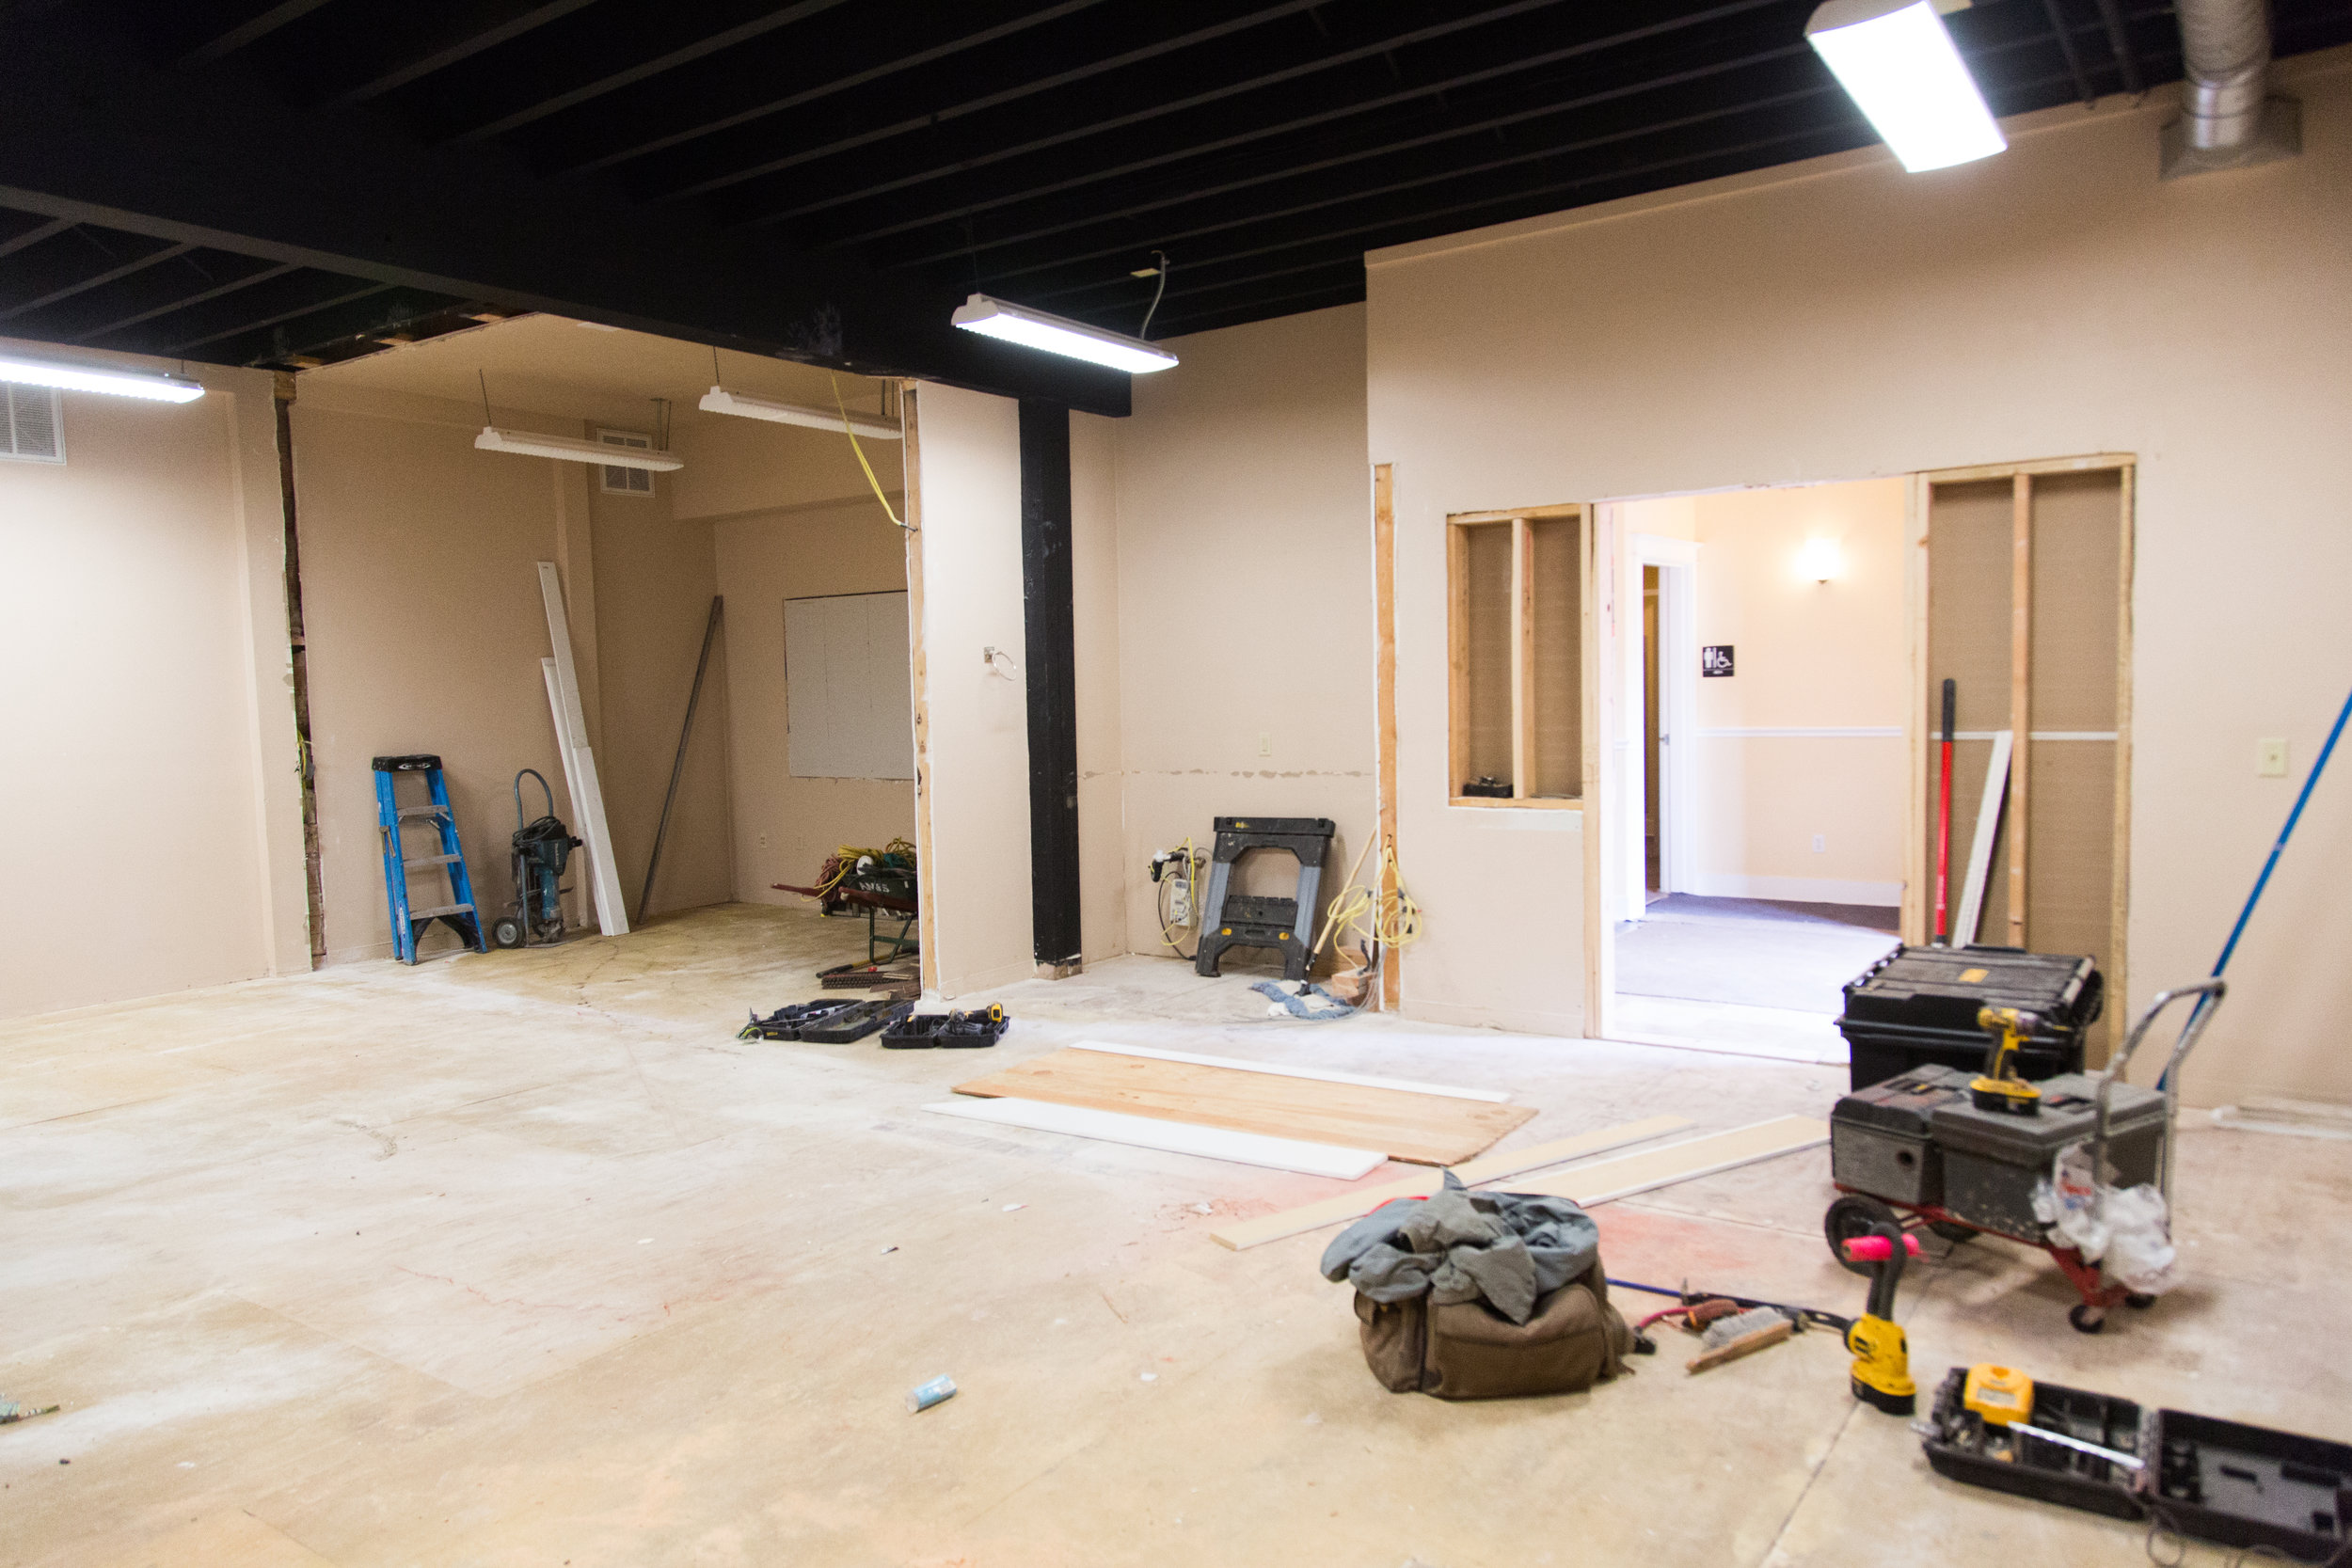 This was once our break room, conference room 2, and kitchen. Now it is completely torn up to become our future Commercial Kitchen.